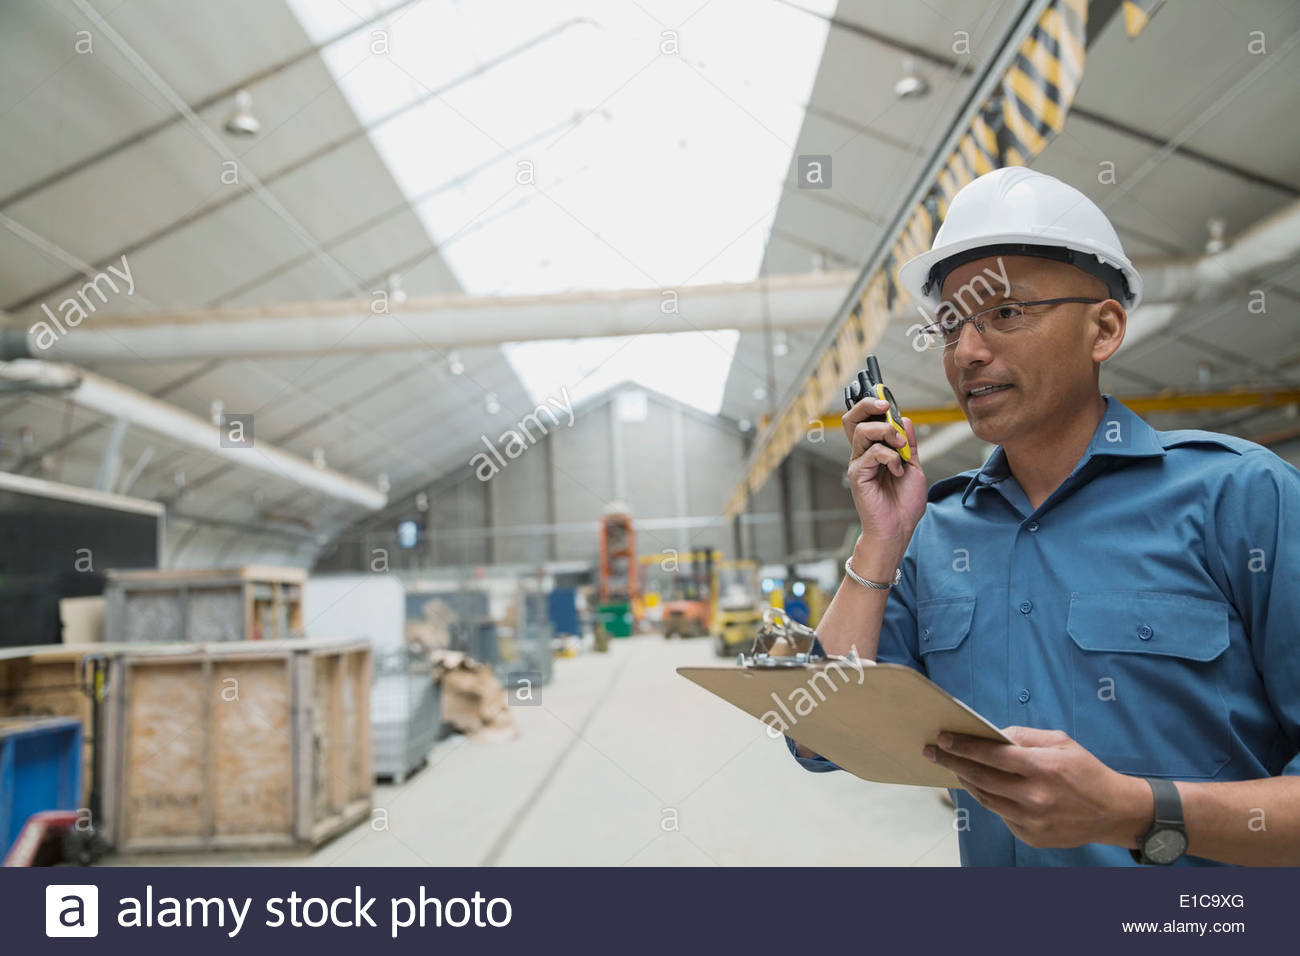 Worker using walkie-talkie in manufacturing plant - Stock Image